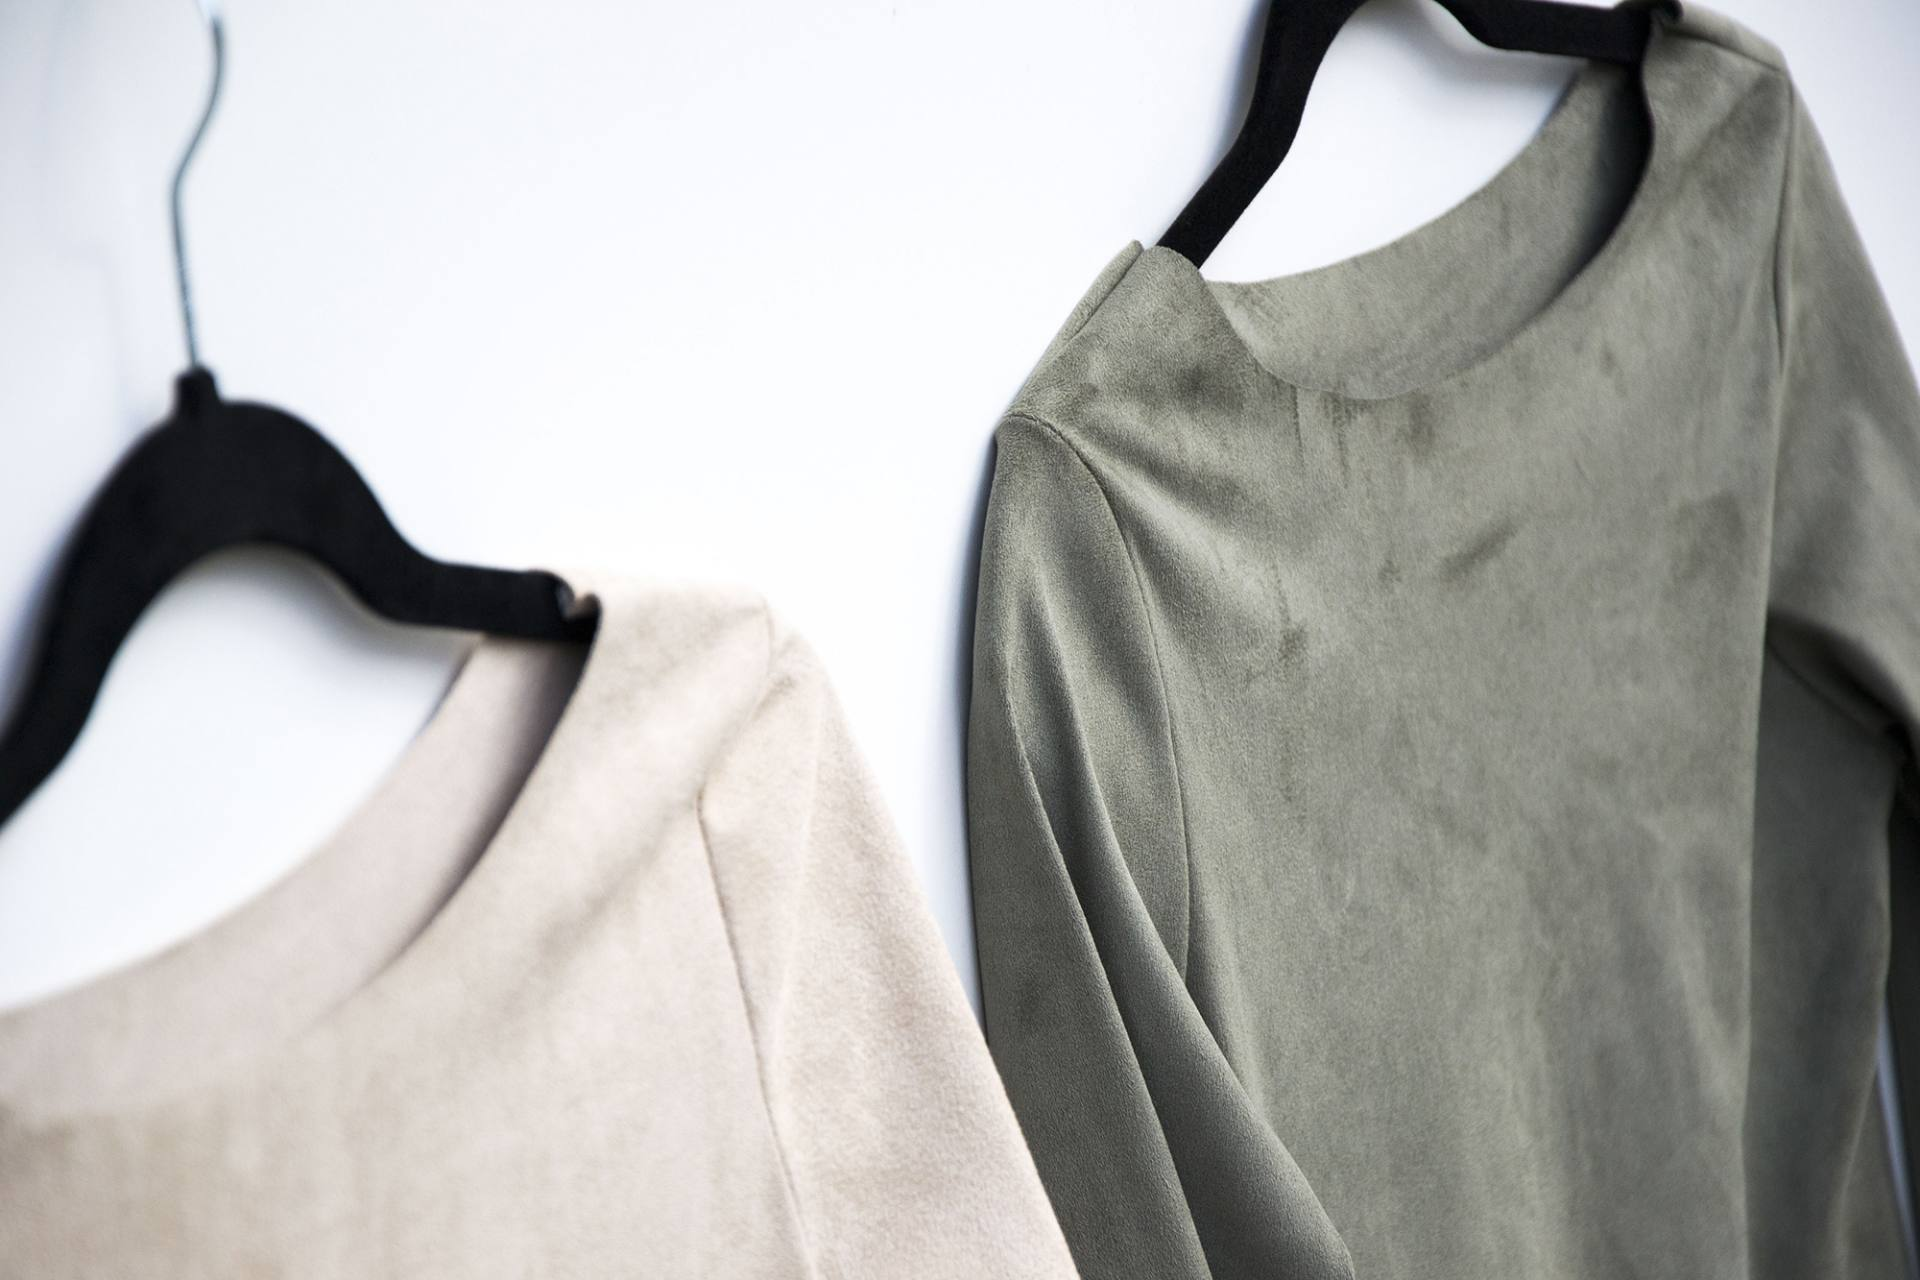 Suède tops | Label of Suze